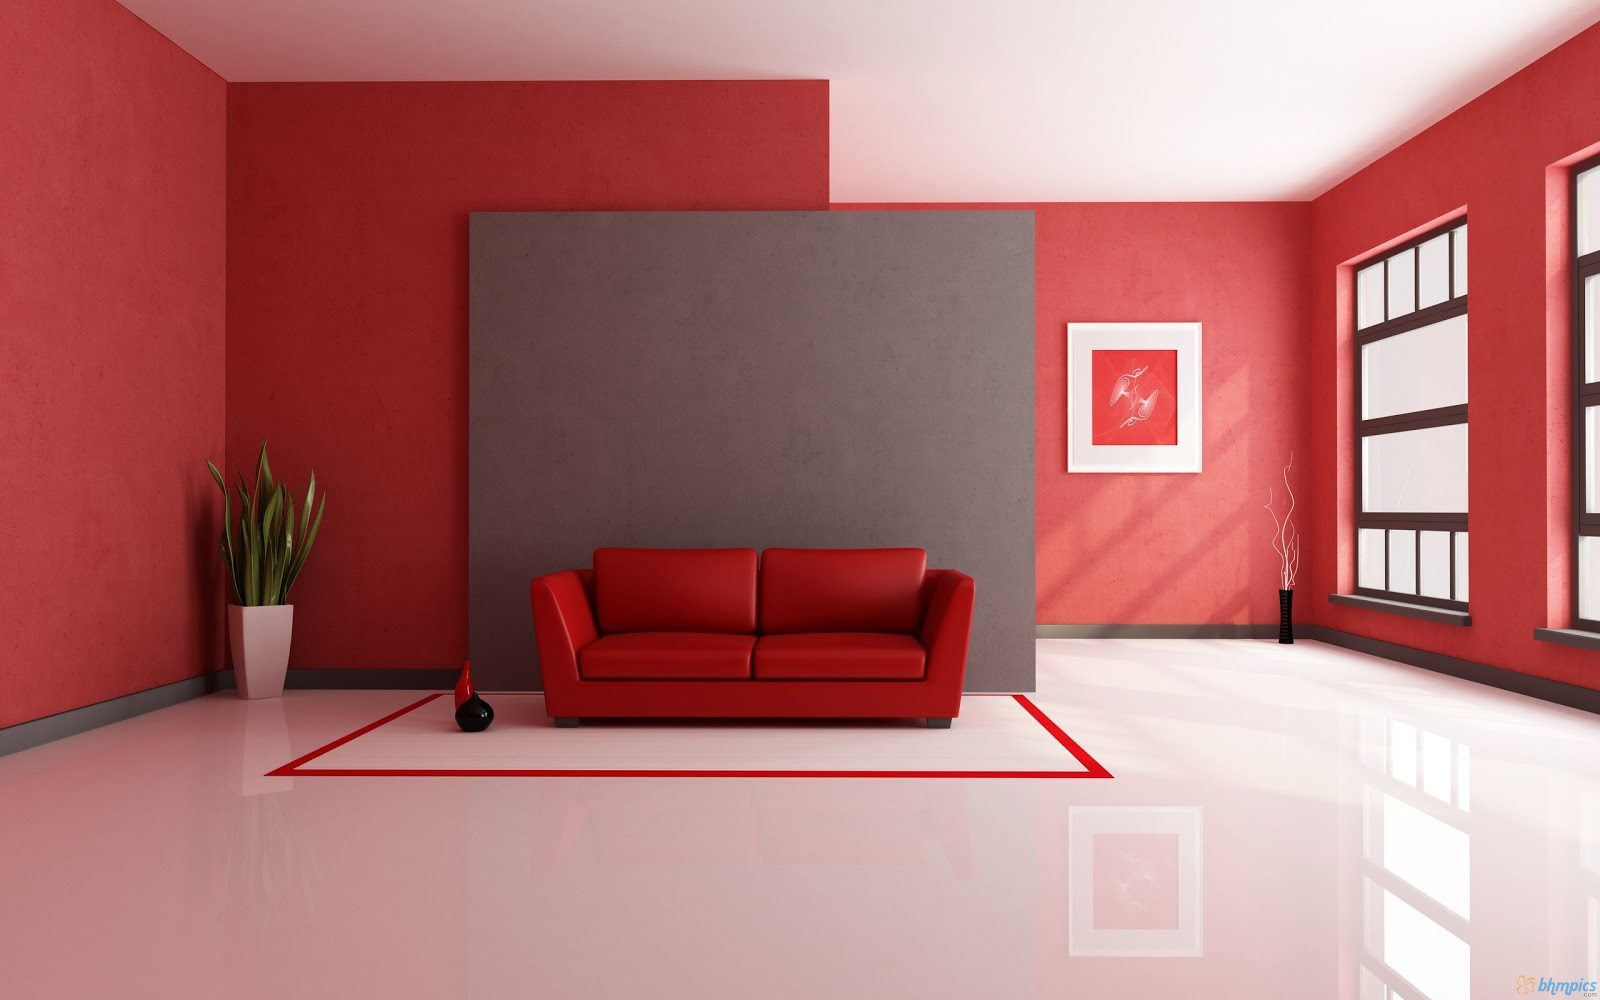 Remarkable Red Living Room Interior Design 1600 x 1000 · 134 kB · jpeg